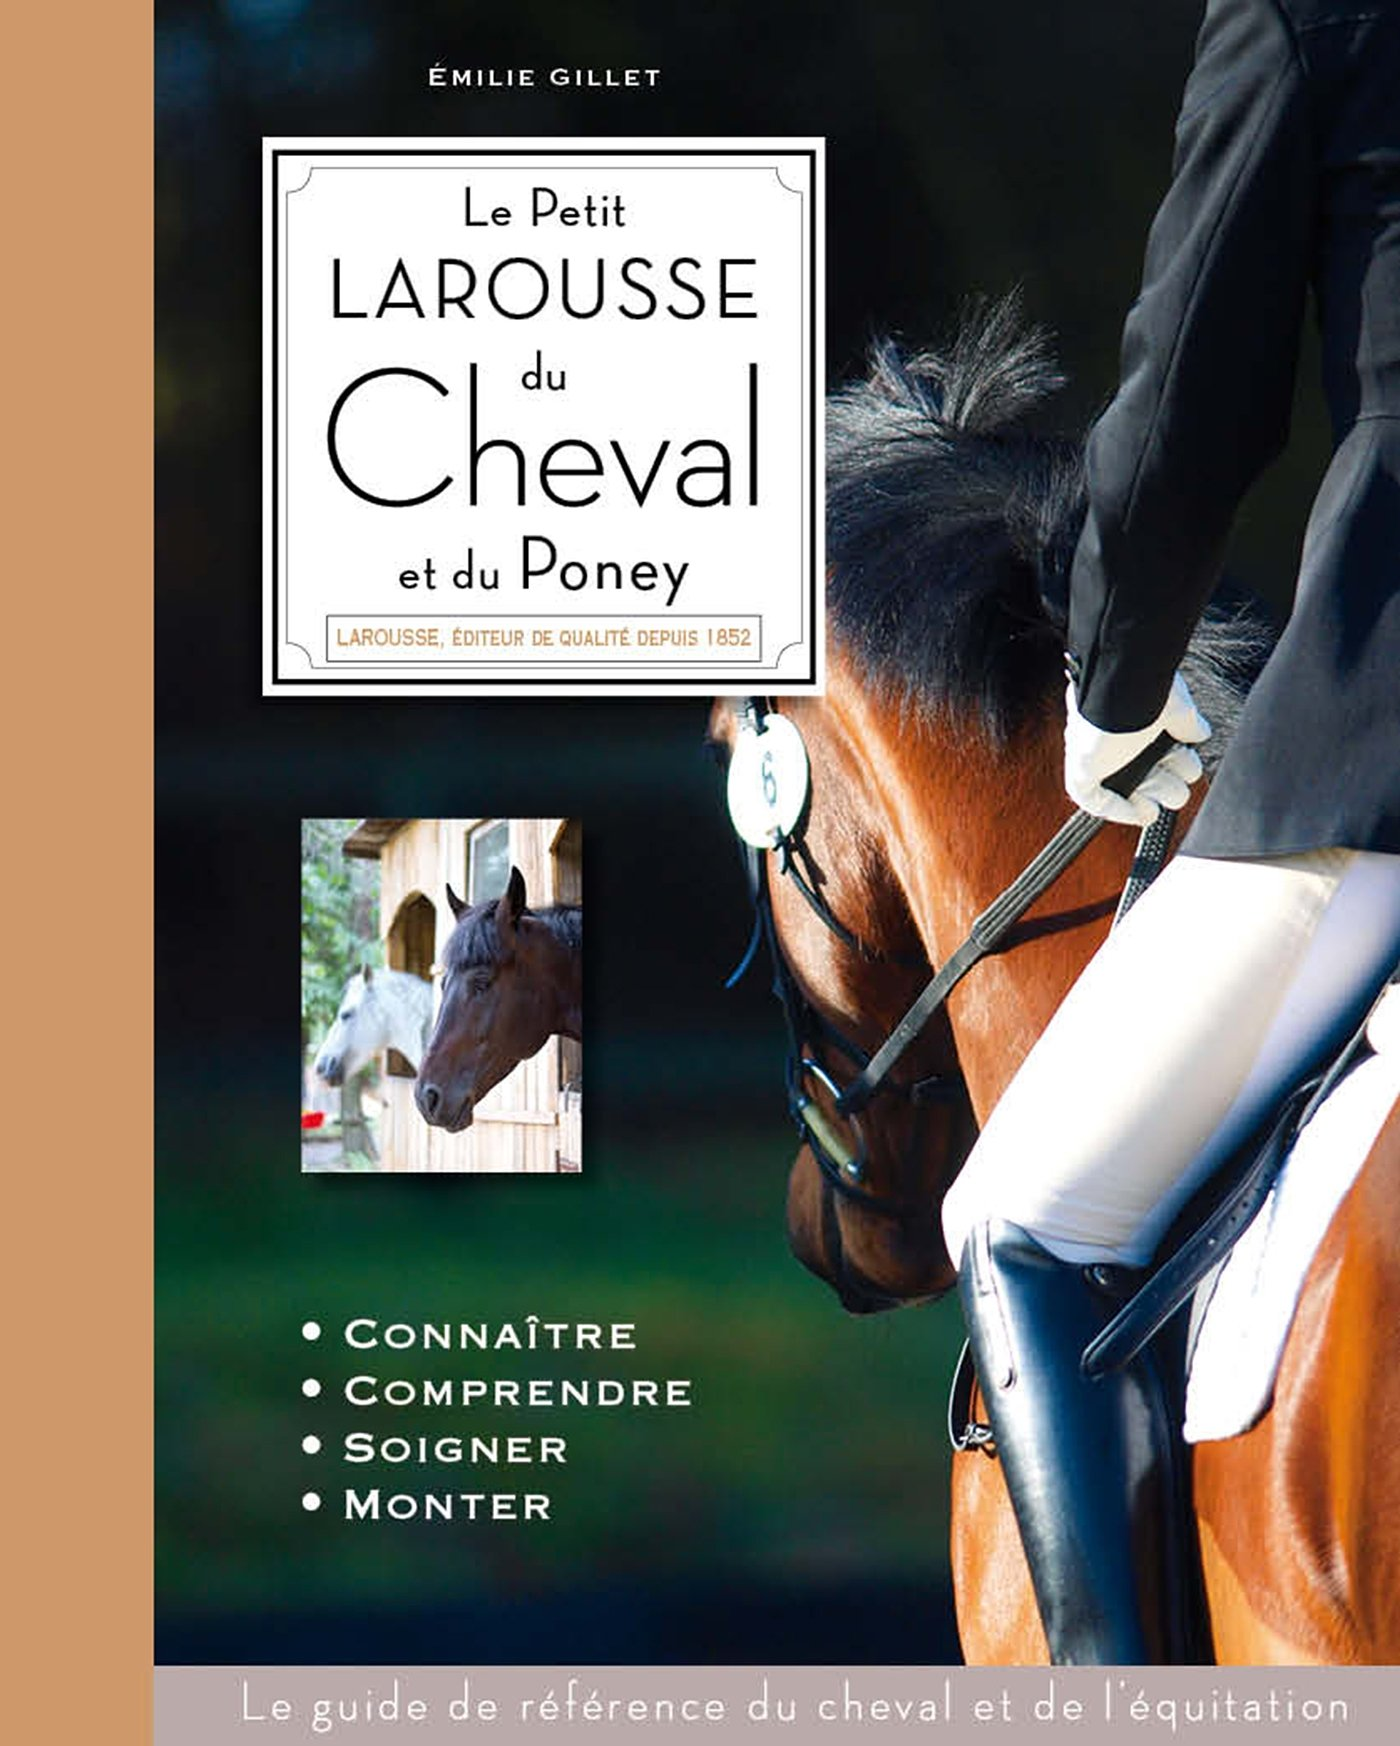 encyclopedie larousse du cheval et du poney